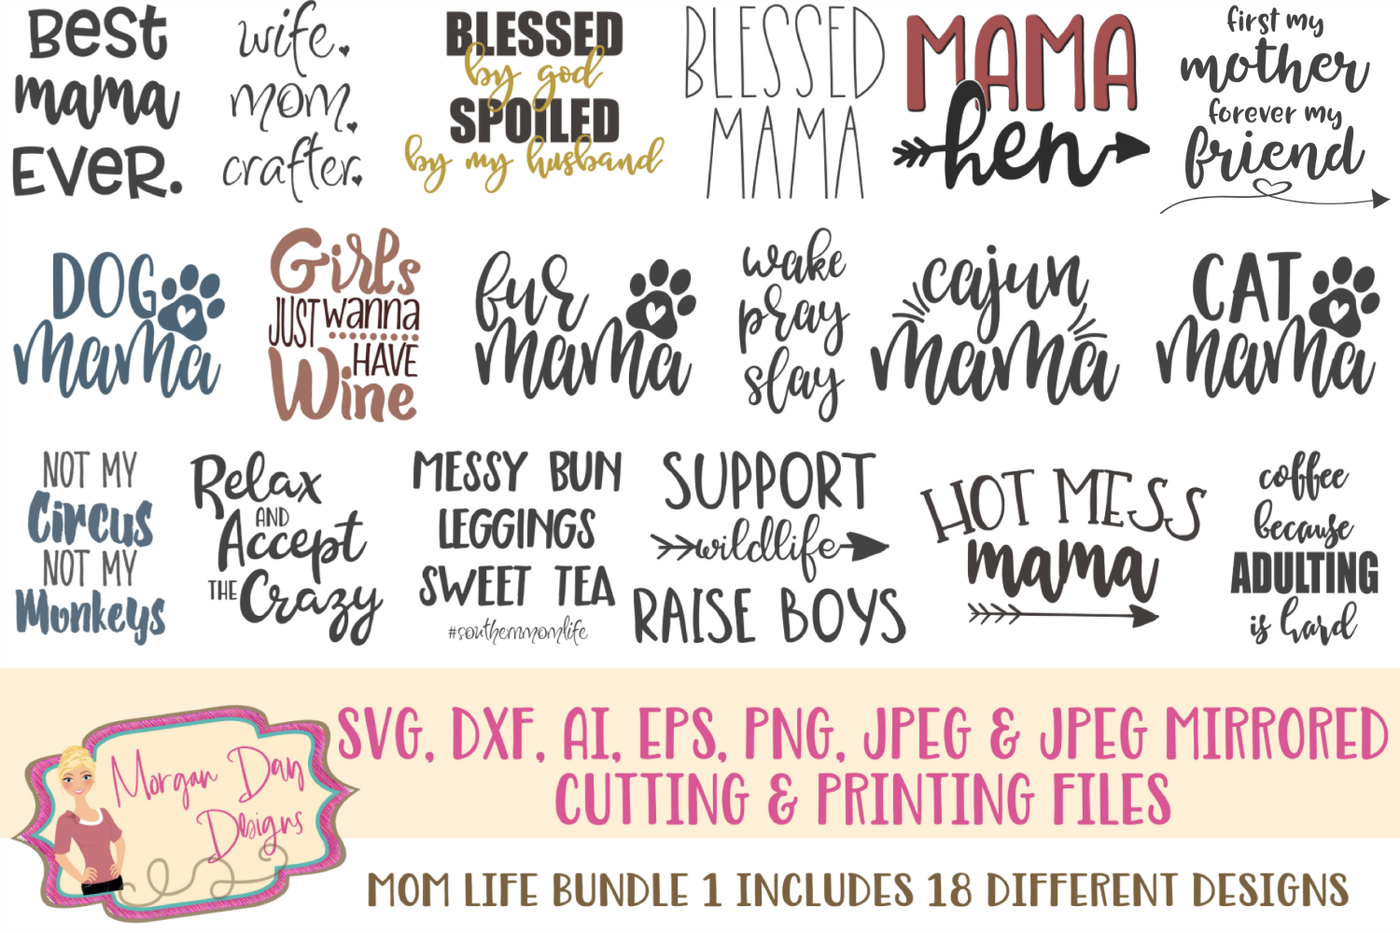 Mom Life Svg Bundle 1 By Morgan Day Designs Thehungryjpeg Com